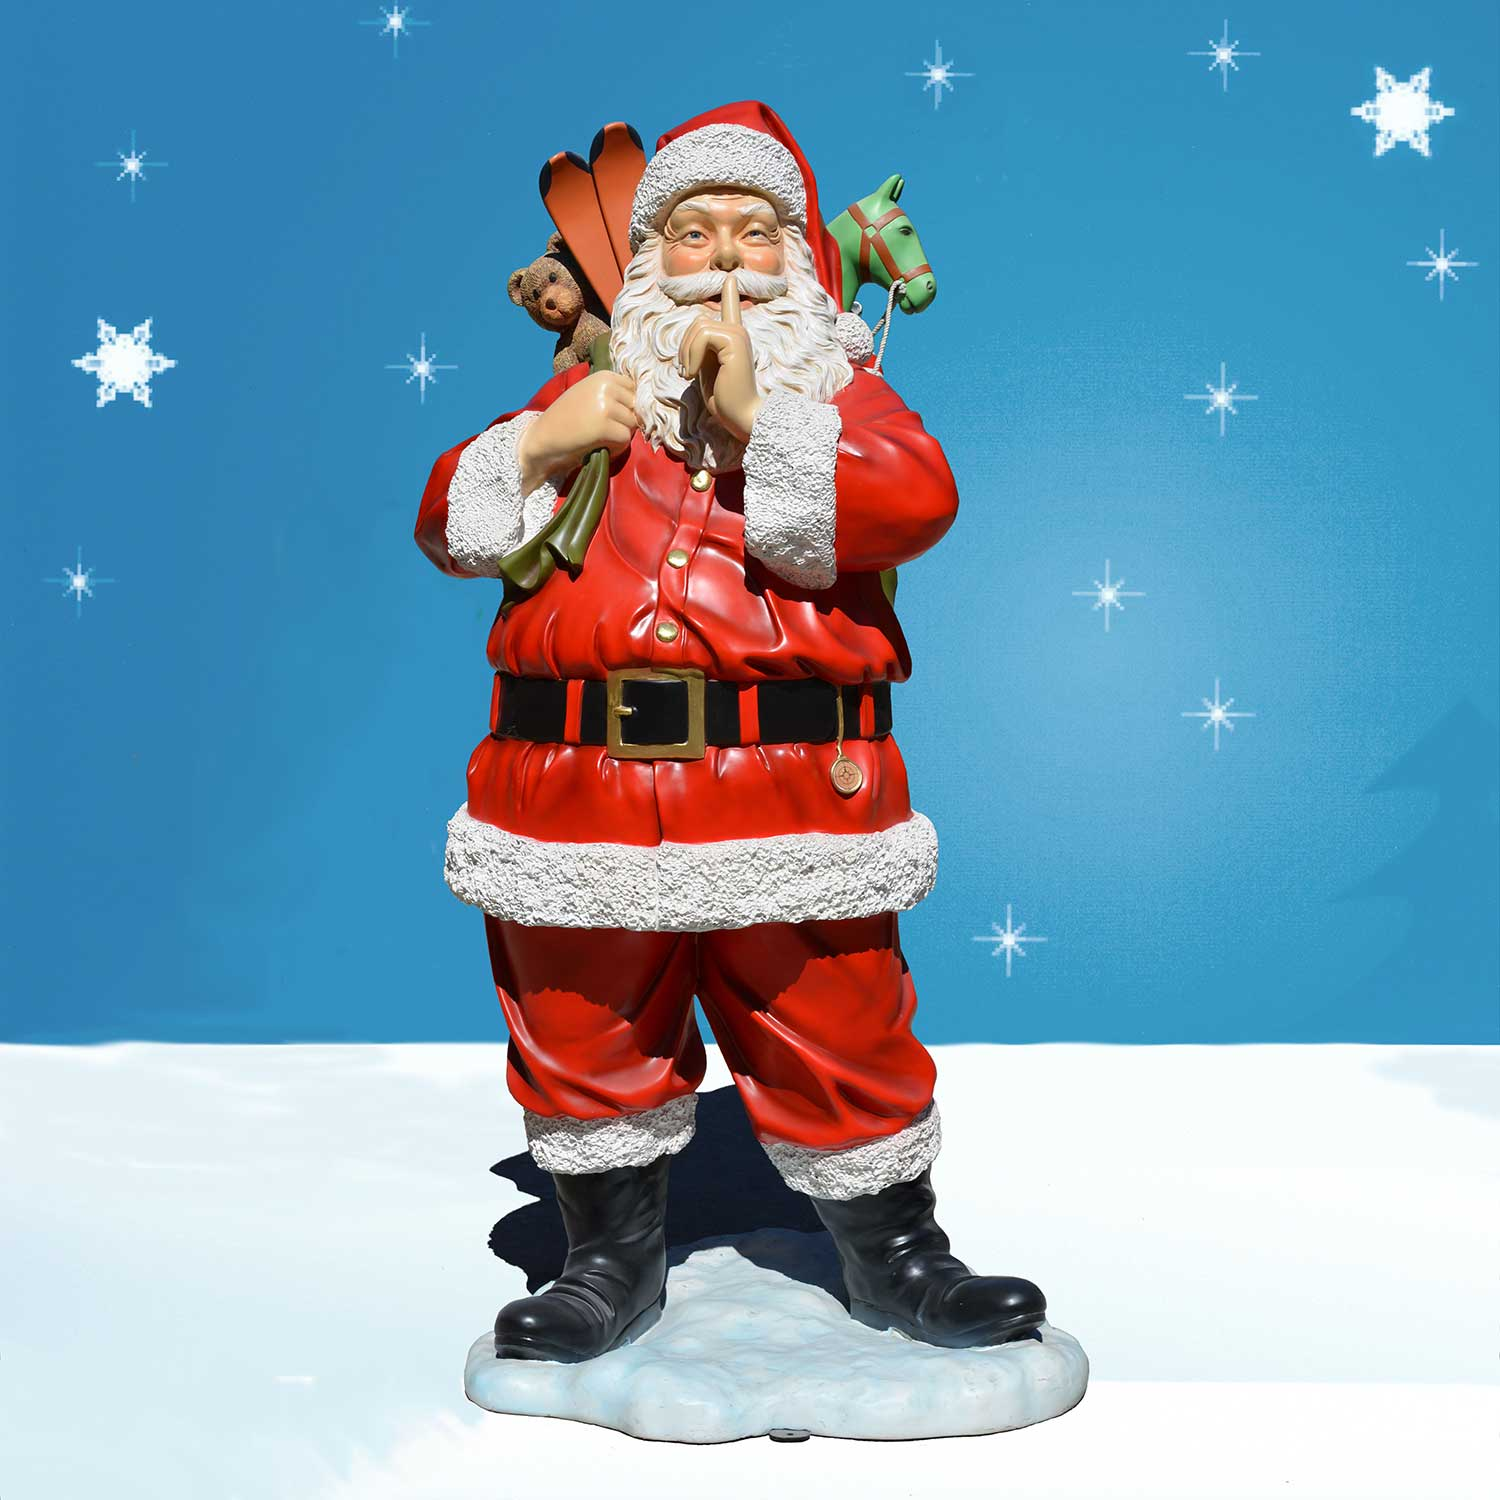 Life Size Santa Clause Figures For Christmas Decor